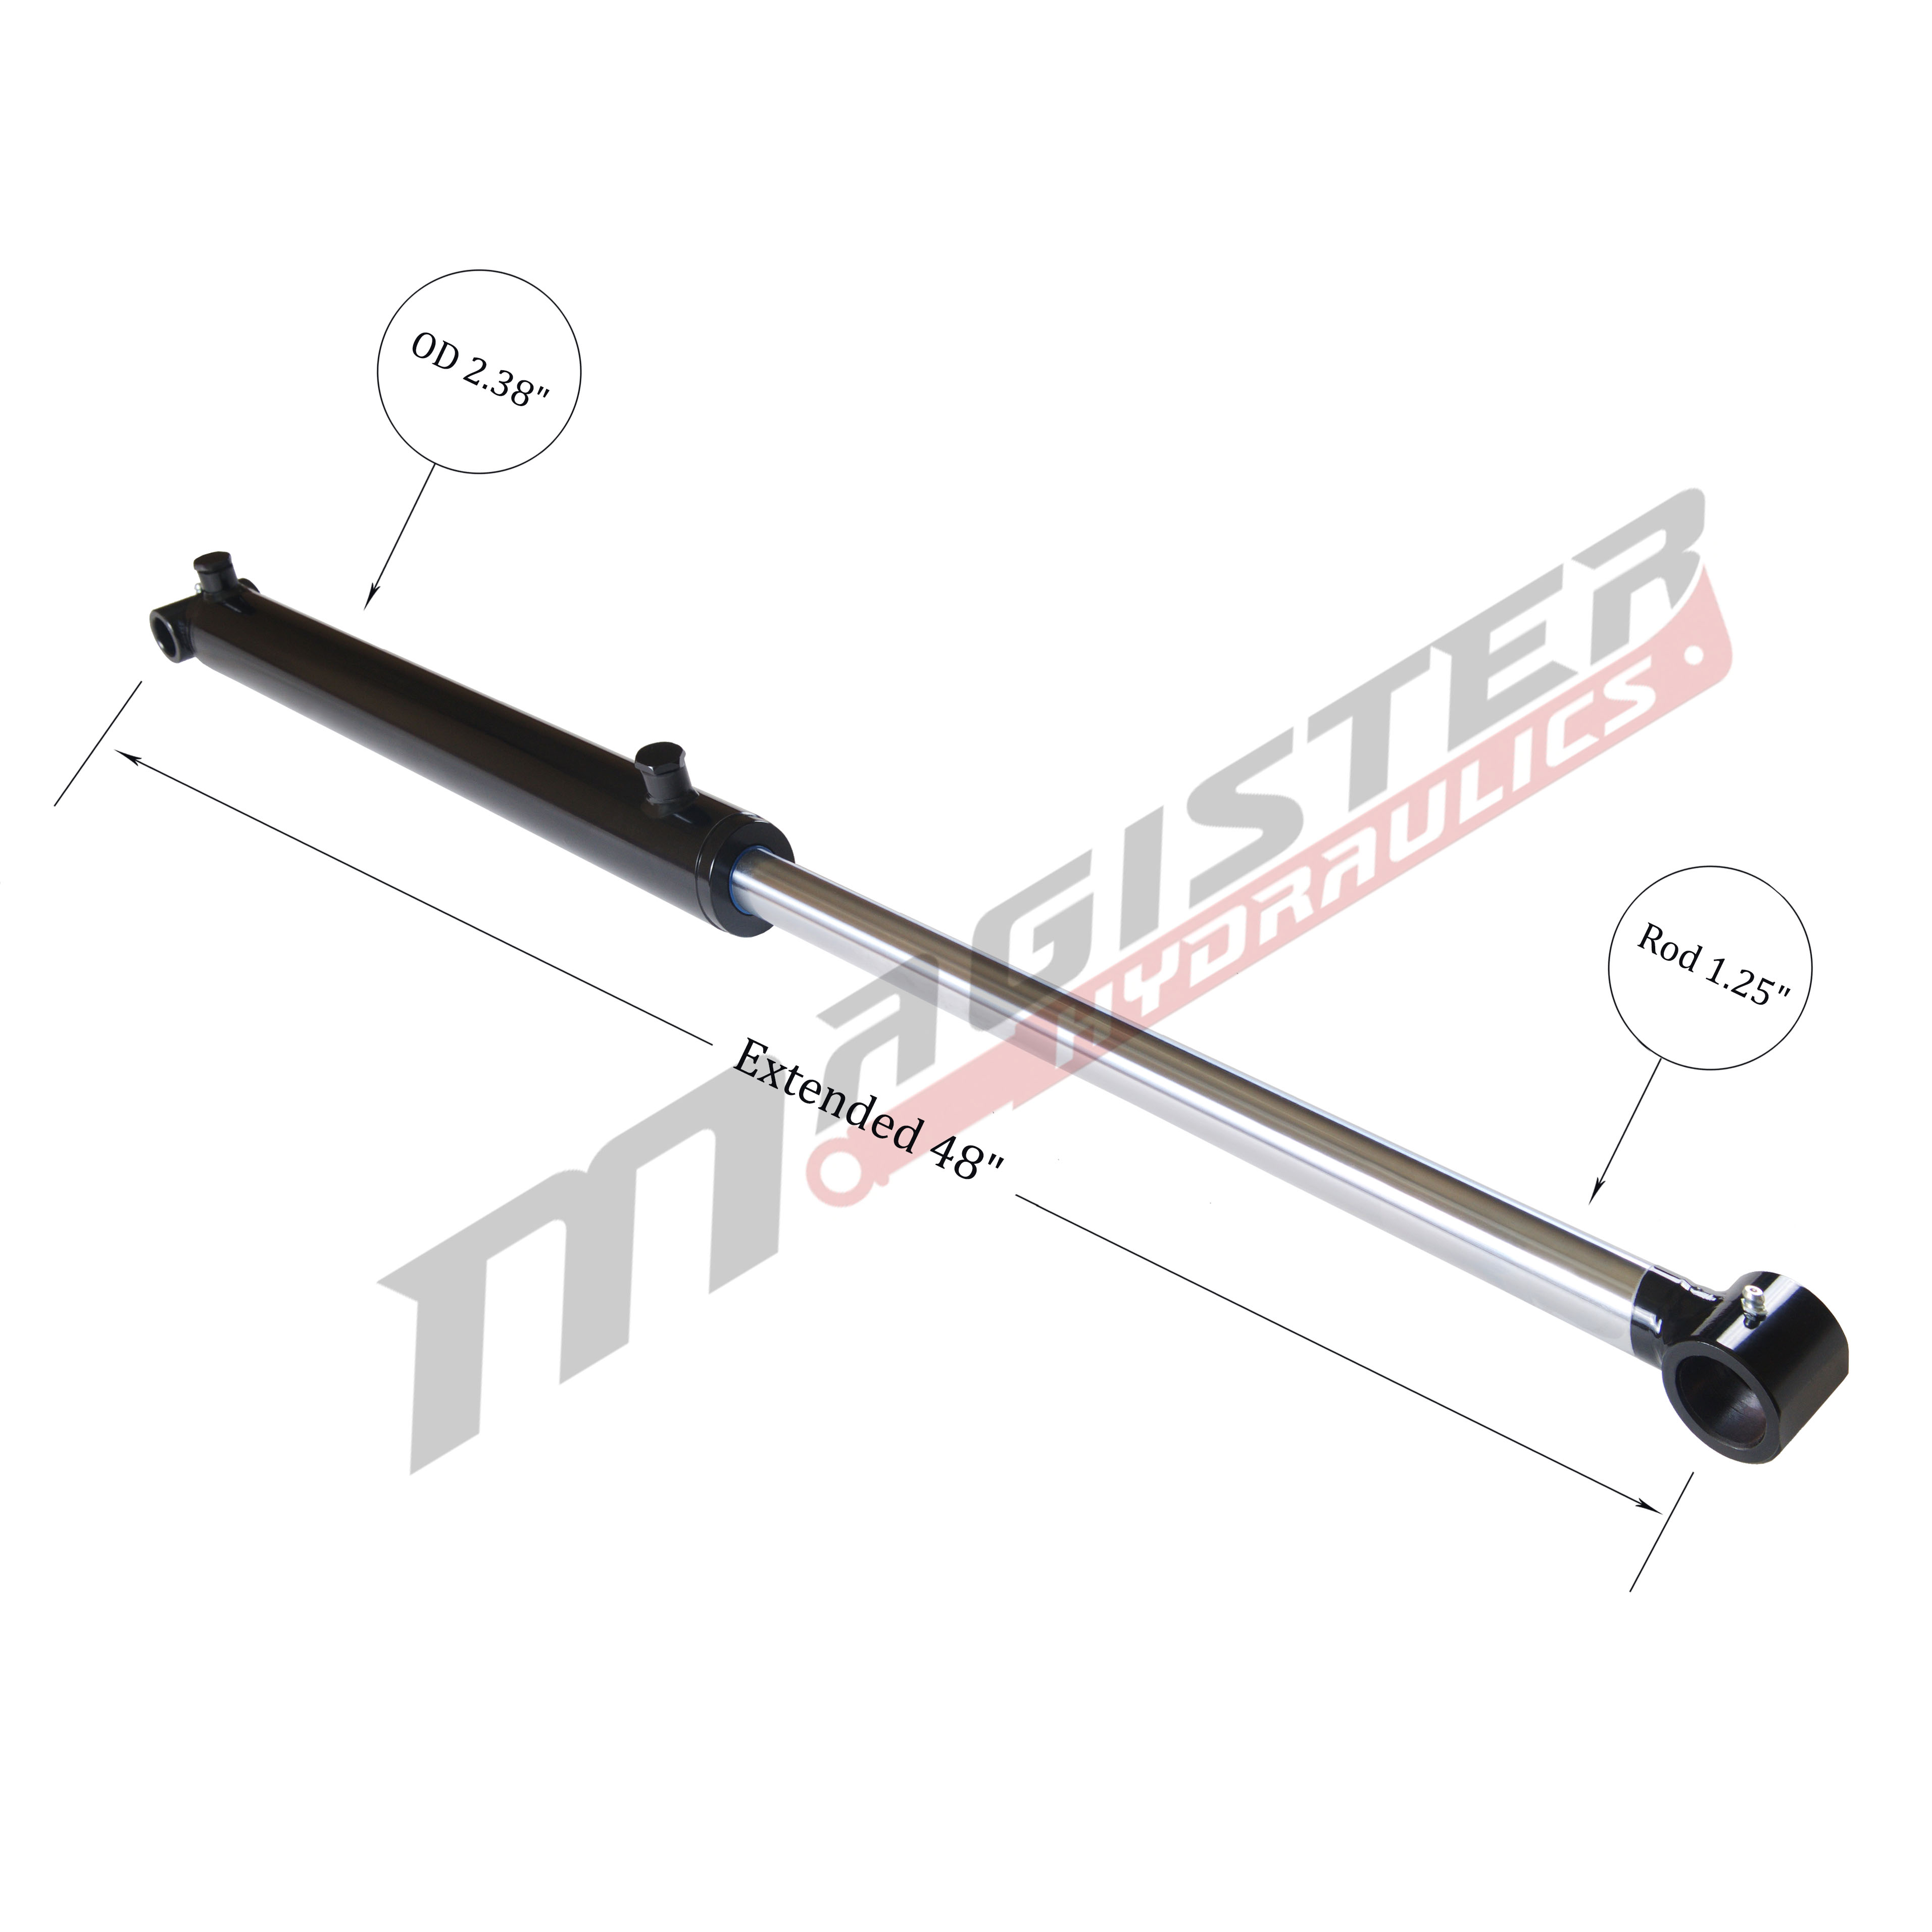 2 bore x 20 stroke hydraulic cylinder, welded cross tube double acting cylinder | Magister Hydraulics